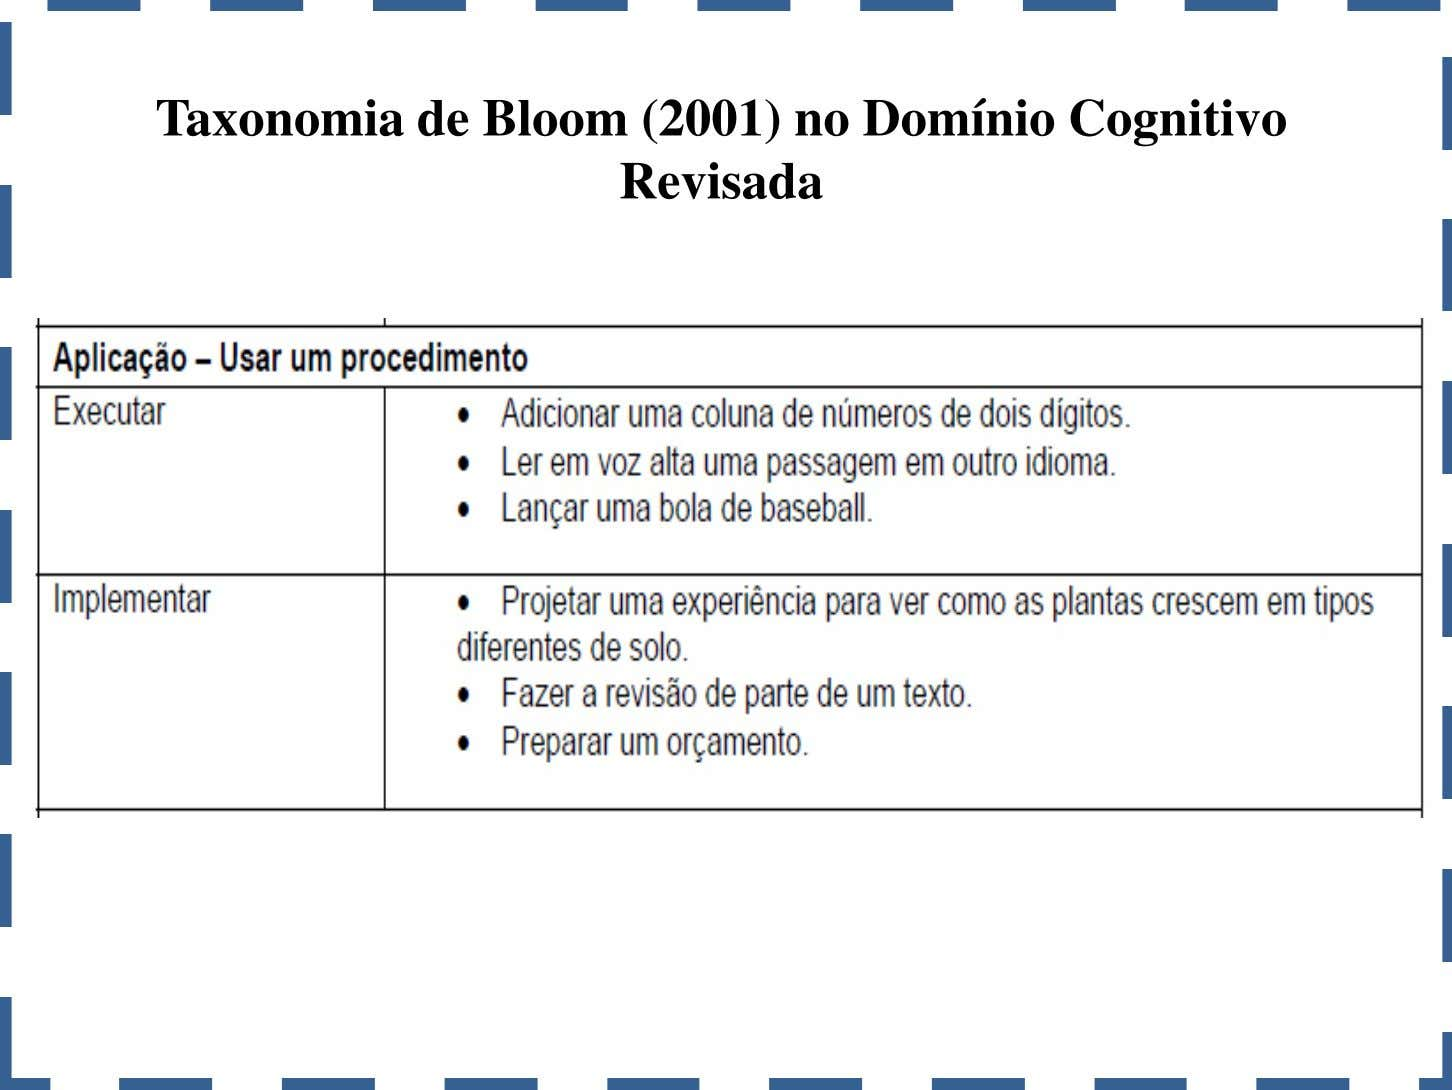 Taxonomia de Bloom (2001) no Domínio Cognitivo Revisada